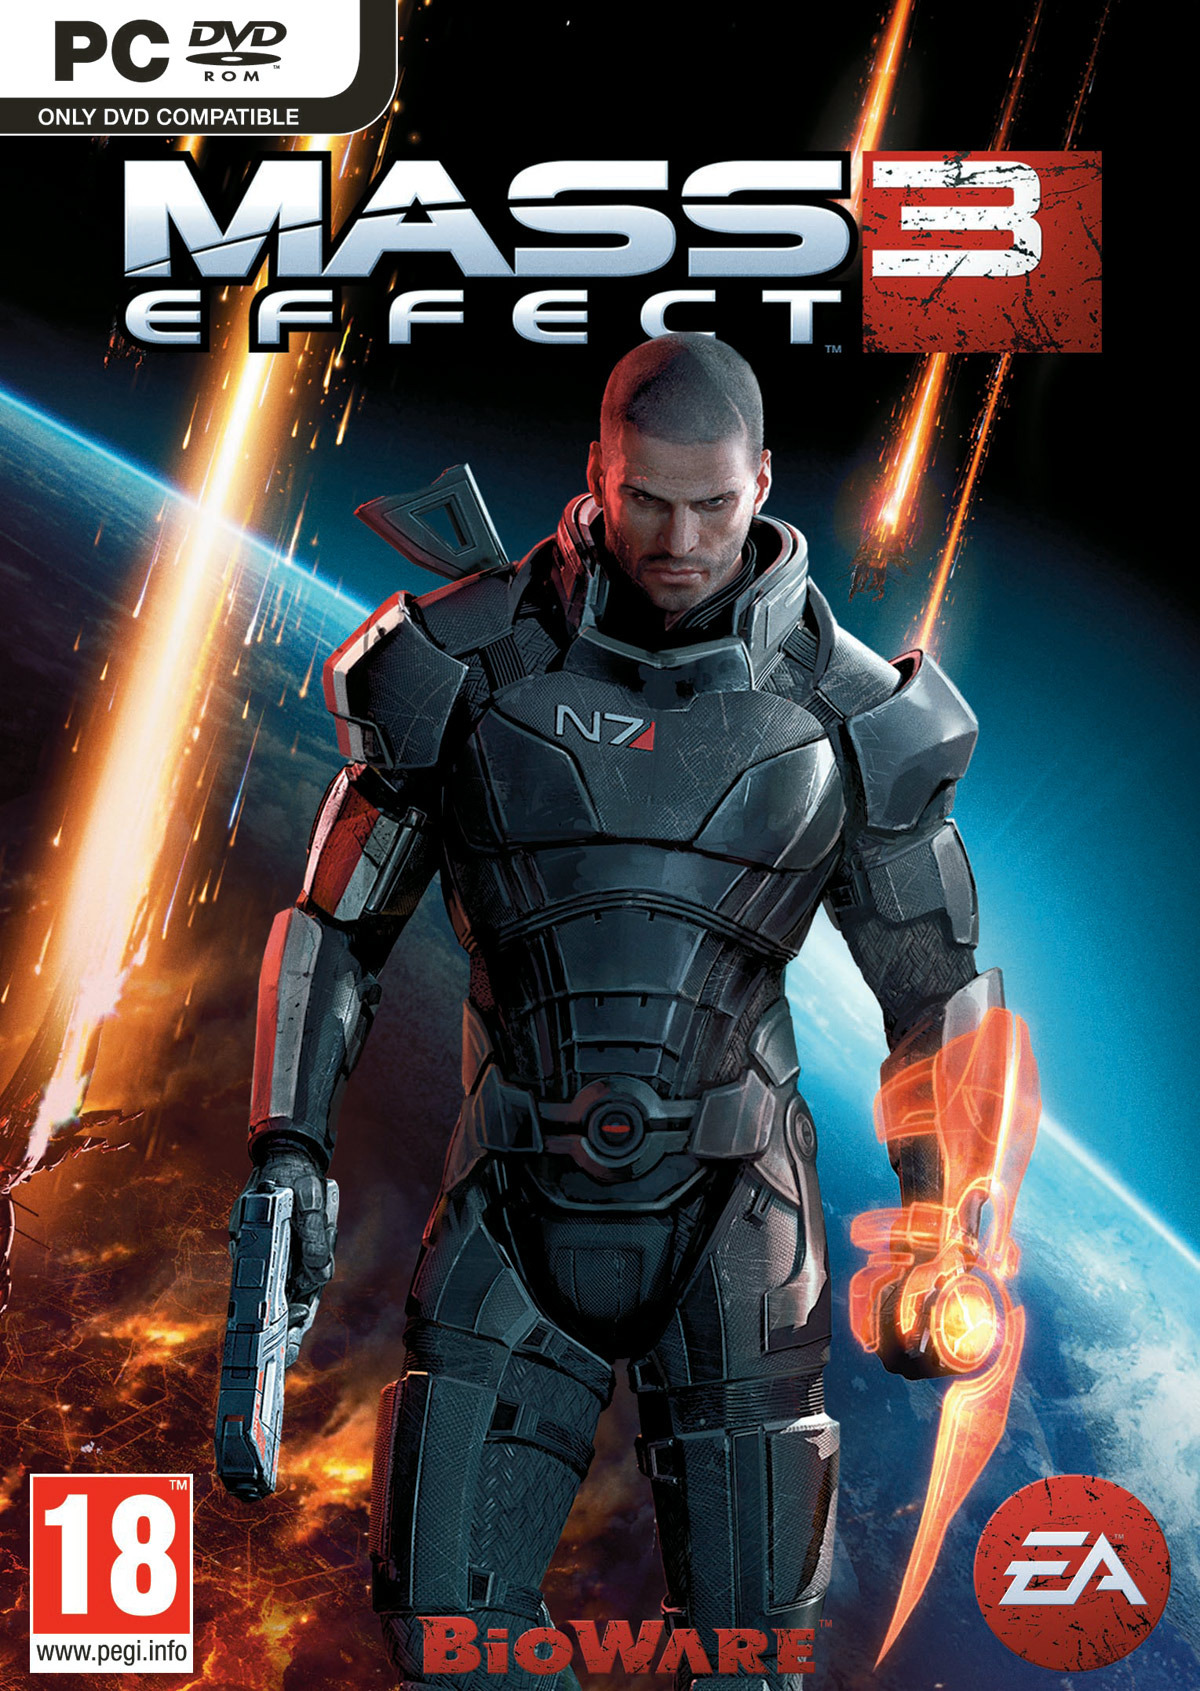 Mass Effect 3: Digital Deluxe Edition (2012) RePack